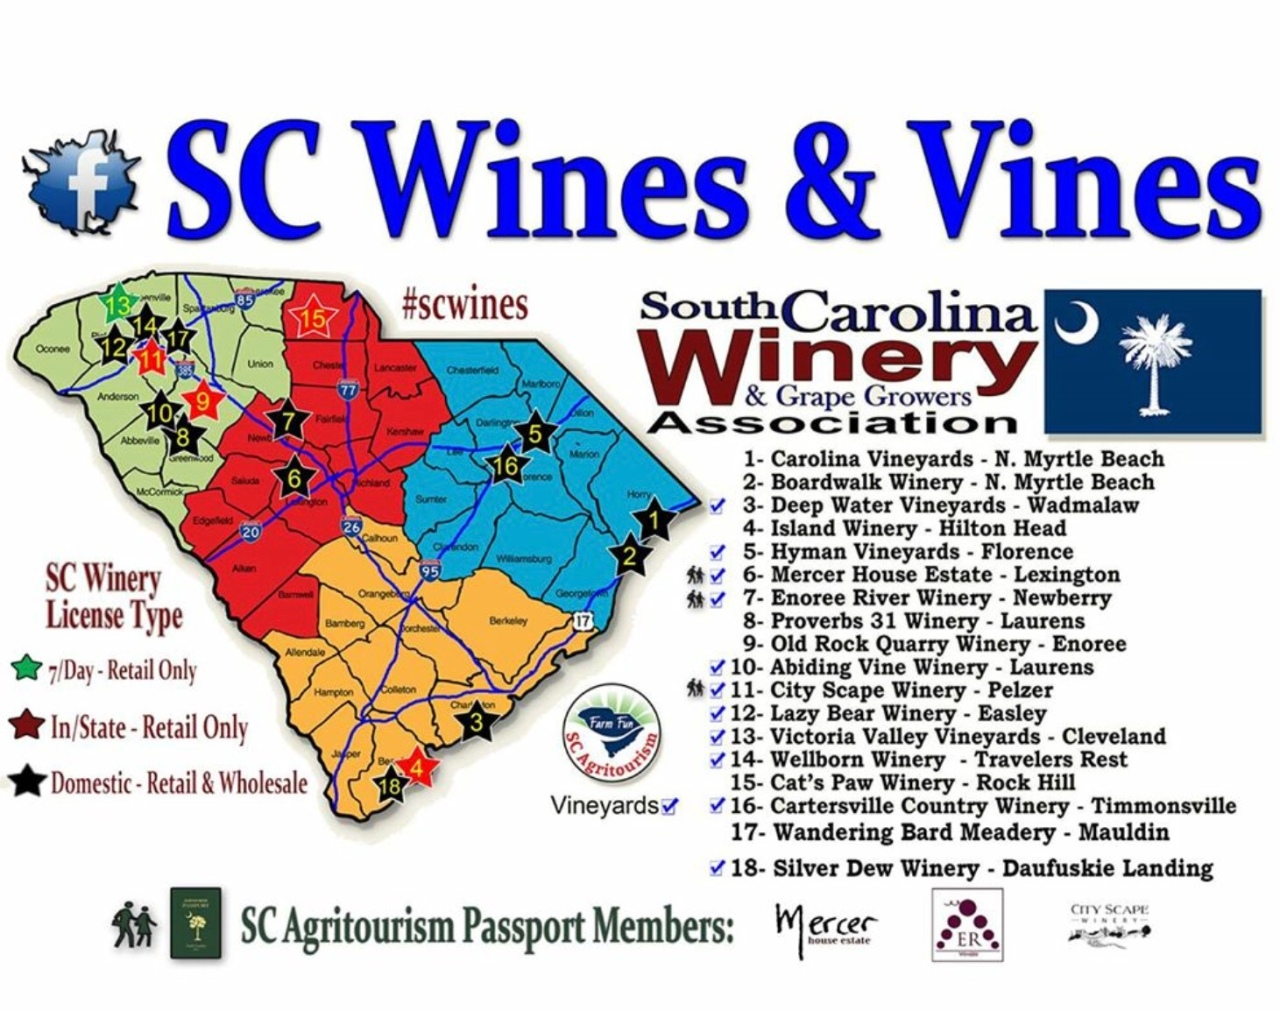 A Few Things We Love About South Carolina Wineries!